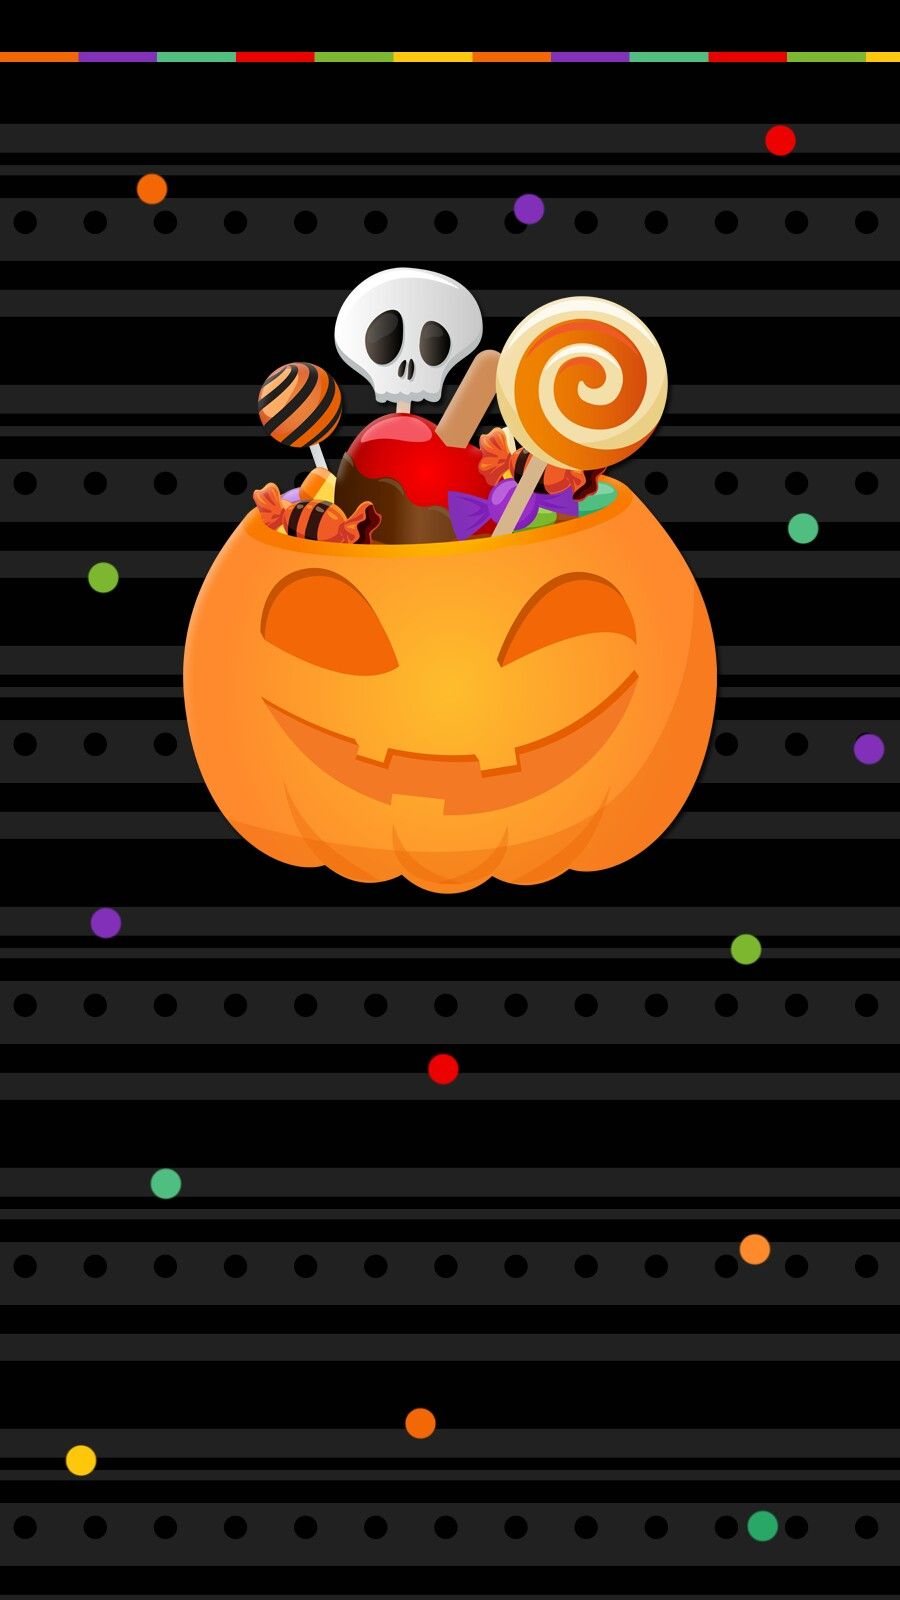 Happy Halloween Wallpaper Android Theme Cute Halloween Wallpaper Iphone Halloween Wallpaper Halloween Printables Free